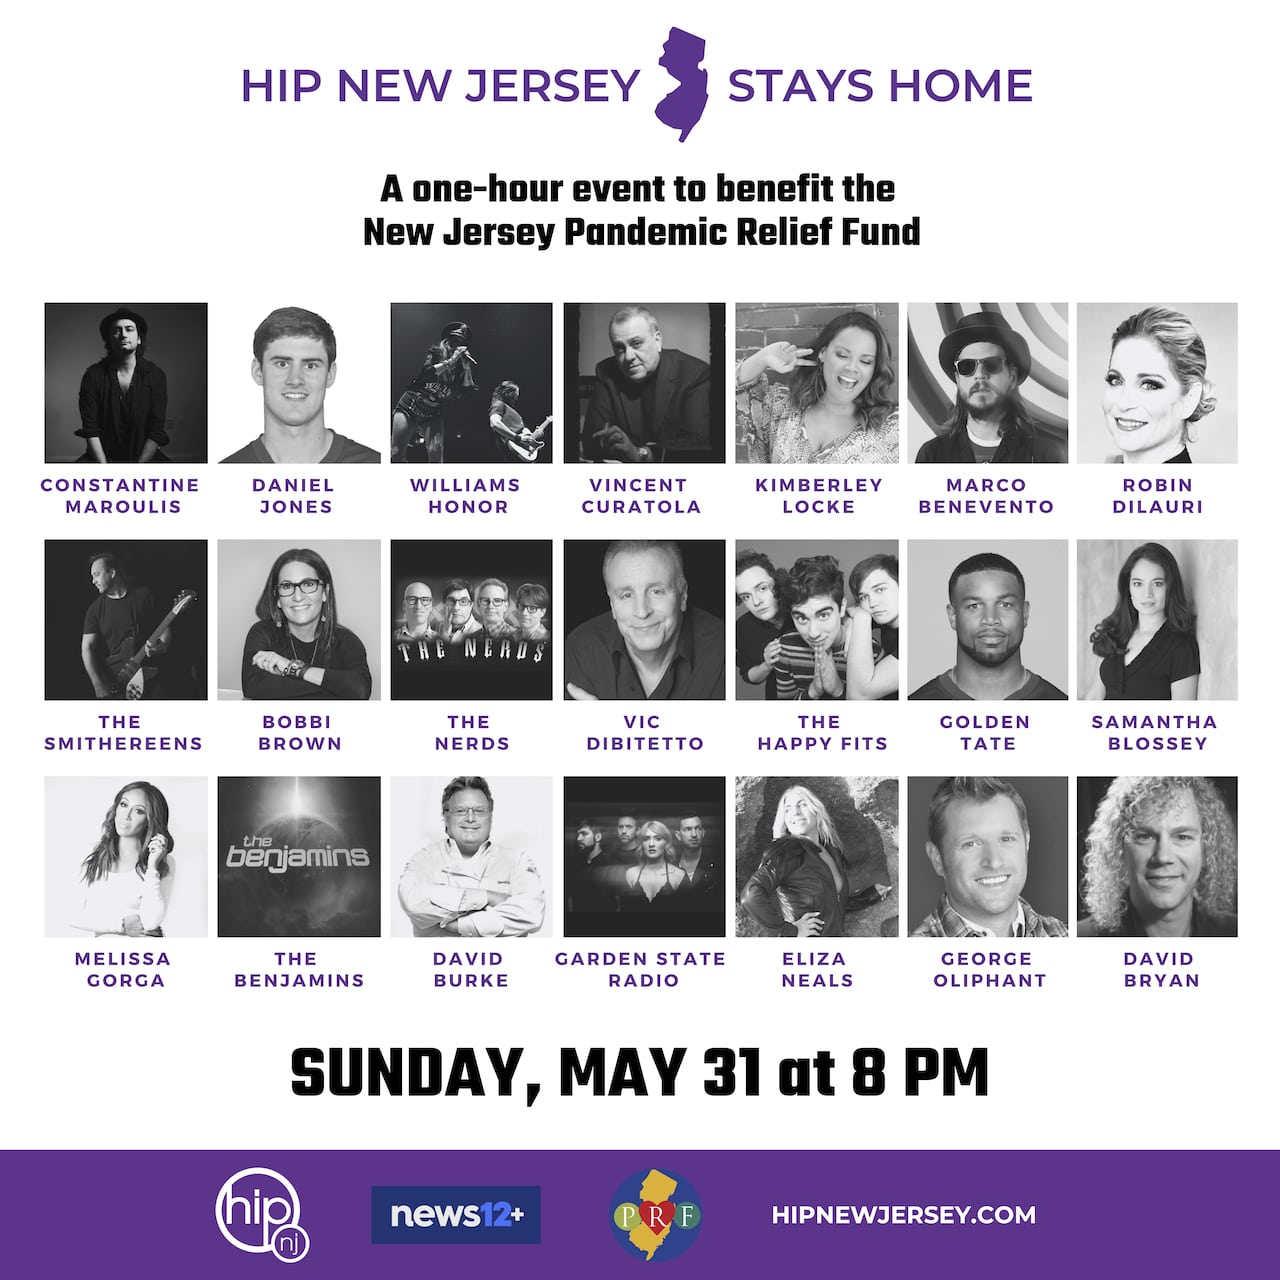 hip new jersey stays home